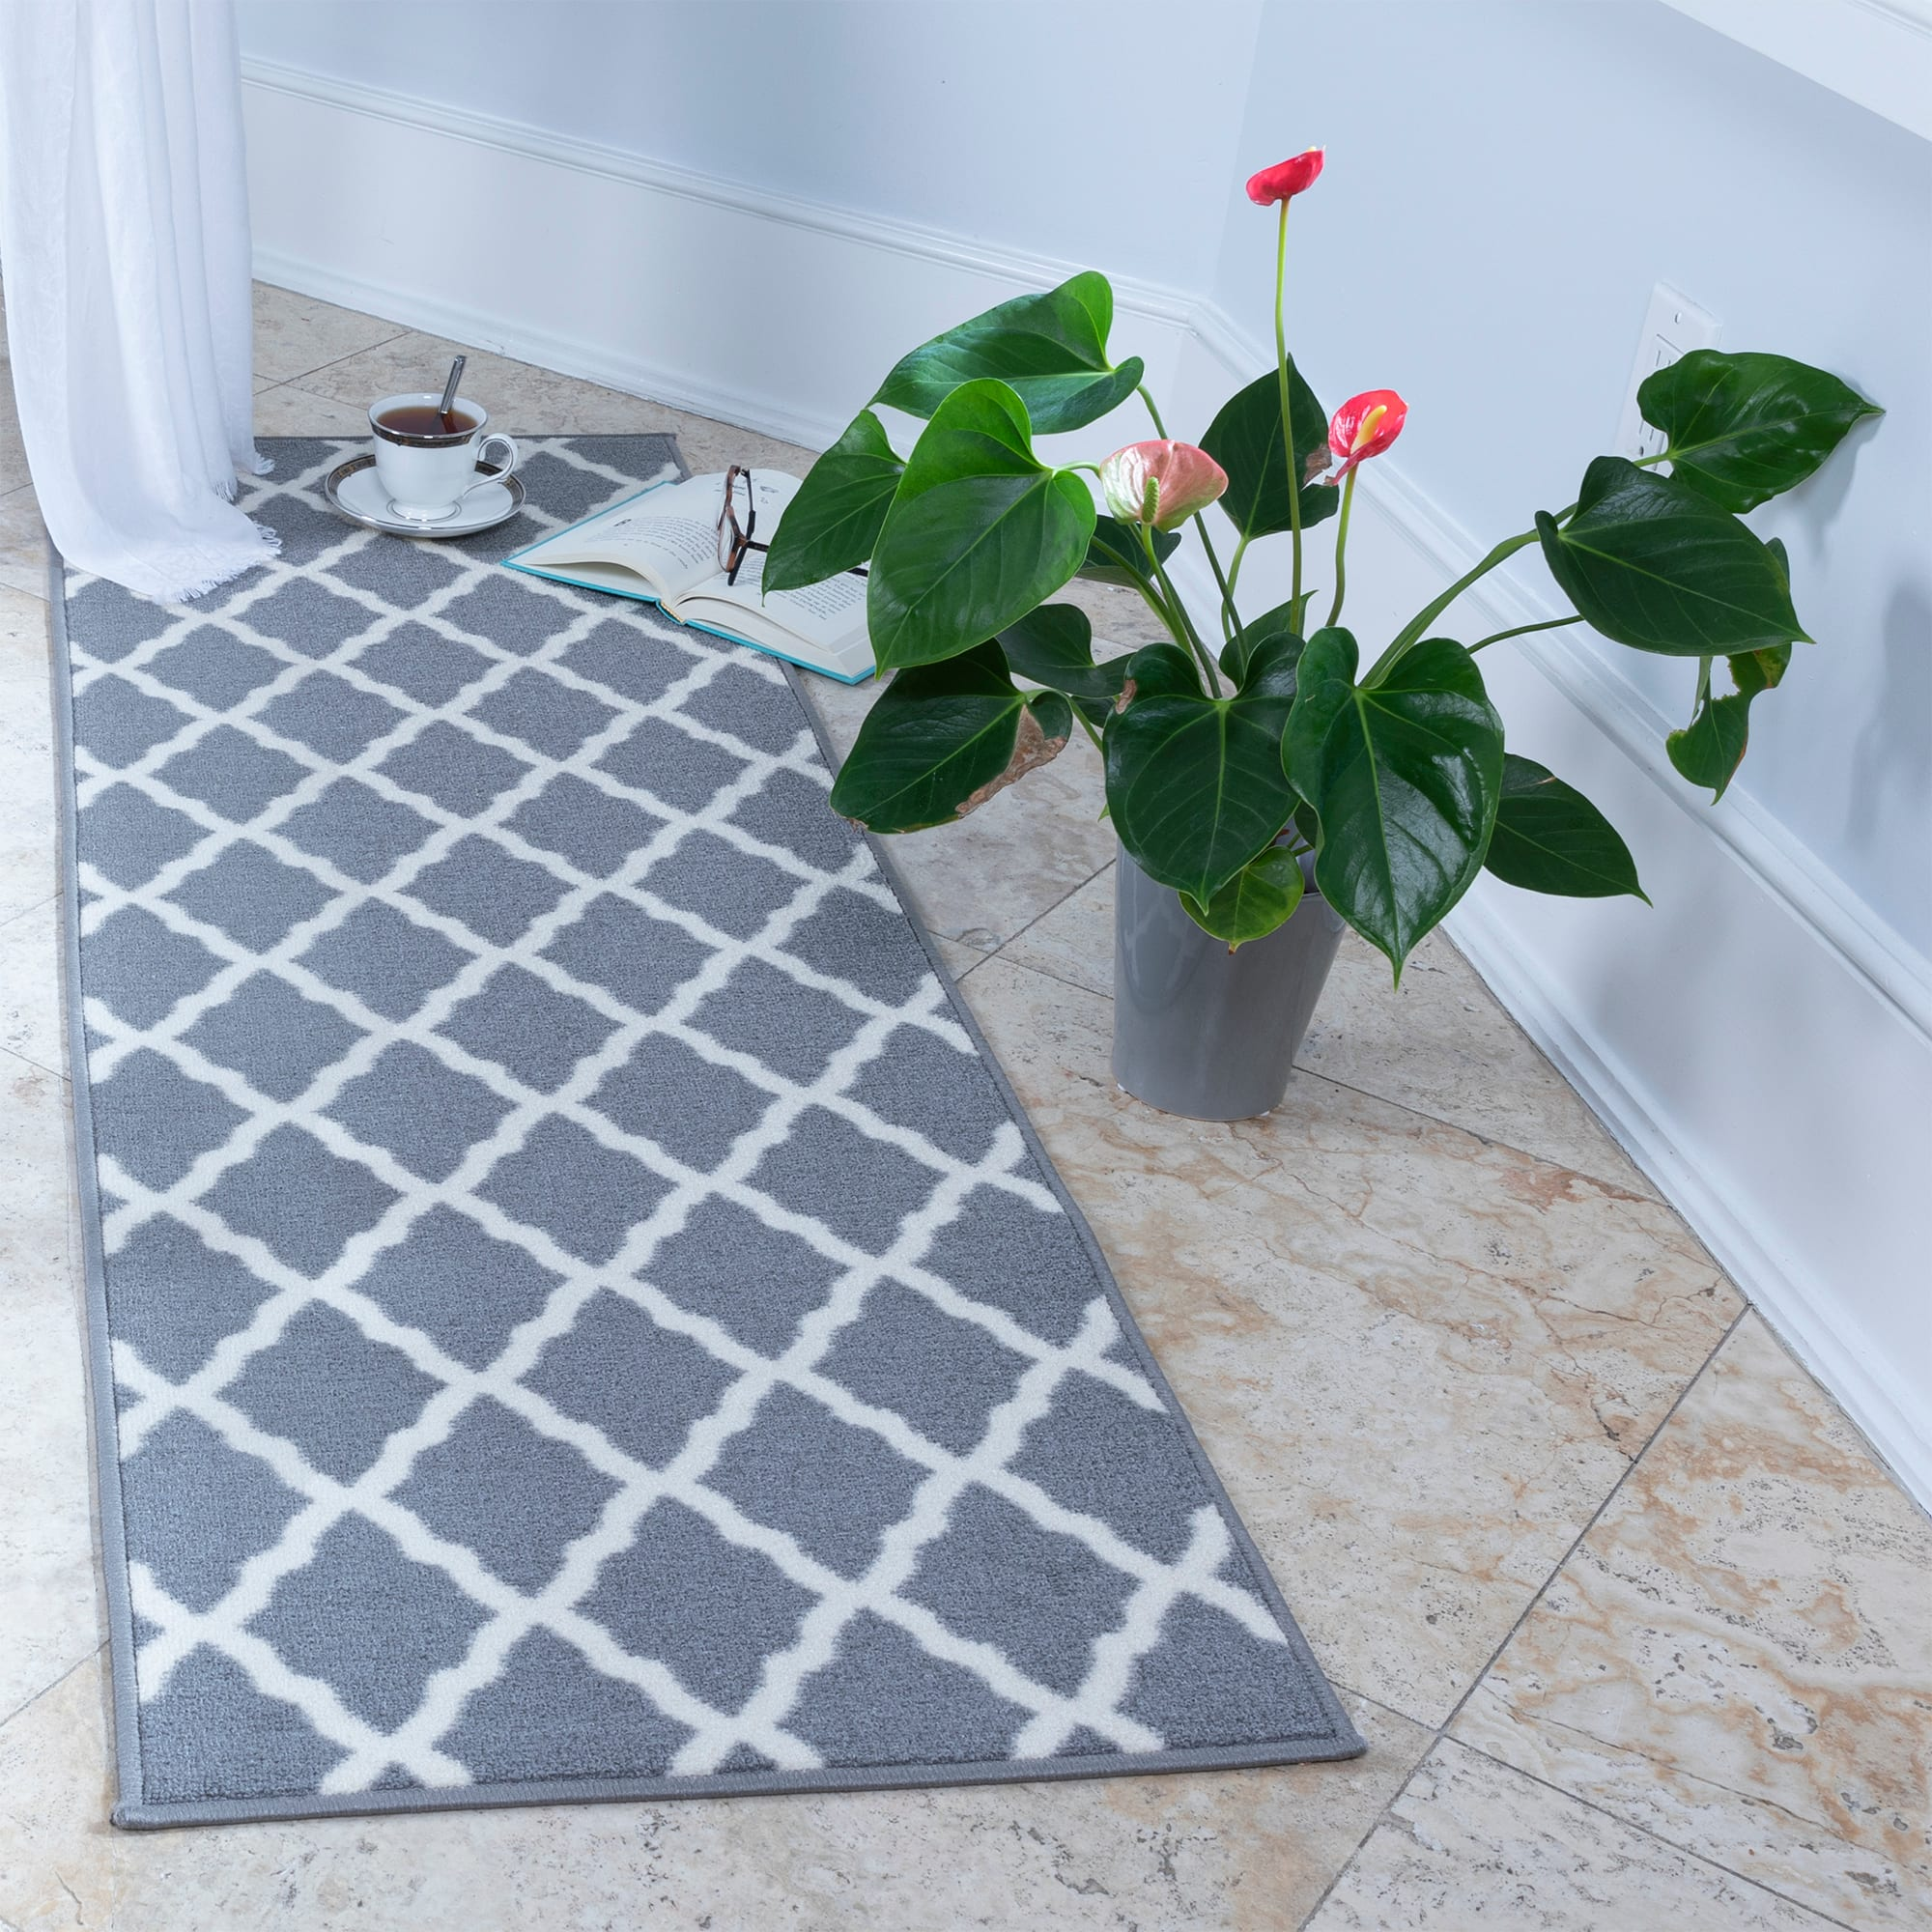 "20"" x 59"" Ottomanson Glamour Collection Moroccan Geometric Trellis Non Slip Rubber Backing Area or Runner Rug (Gray) - $12.50"